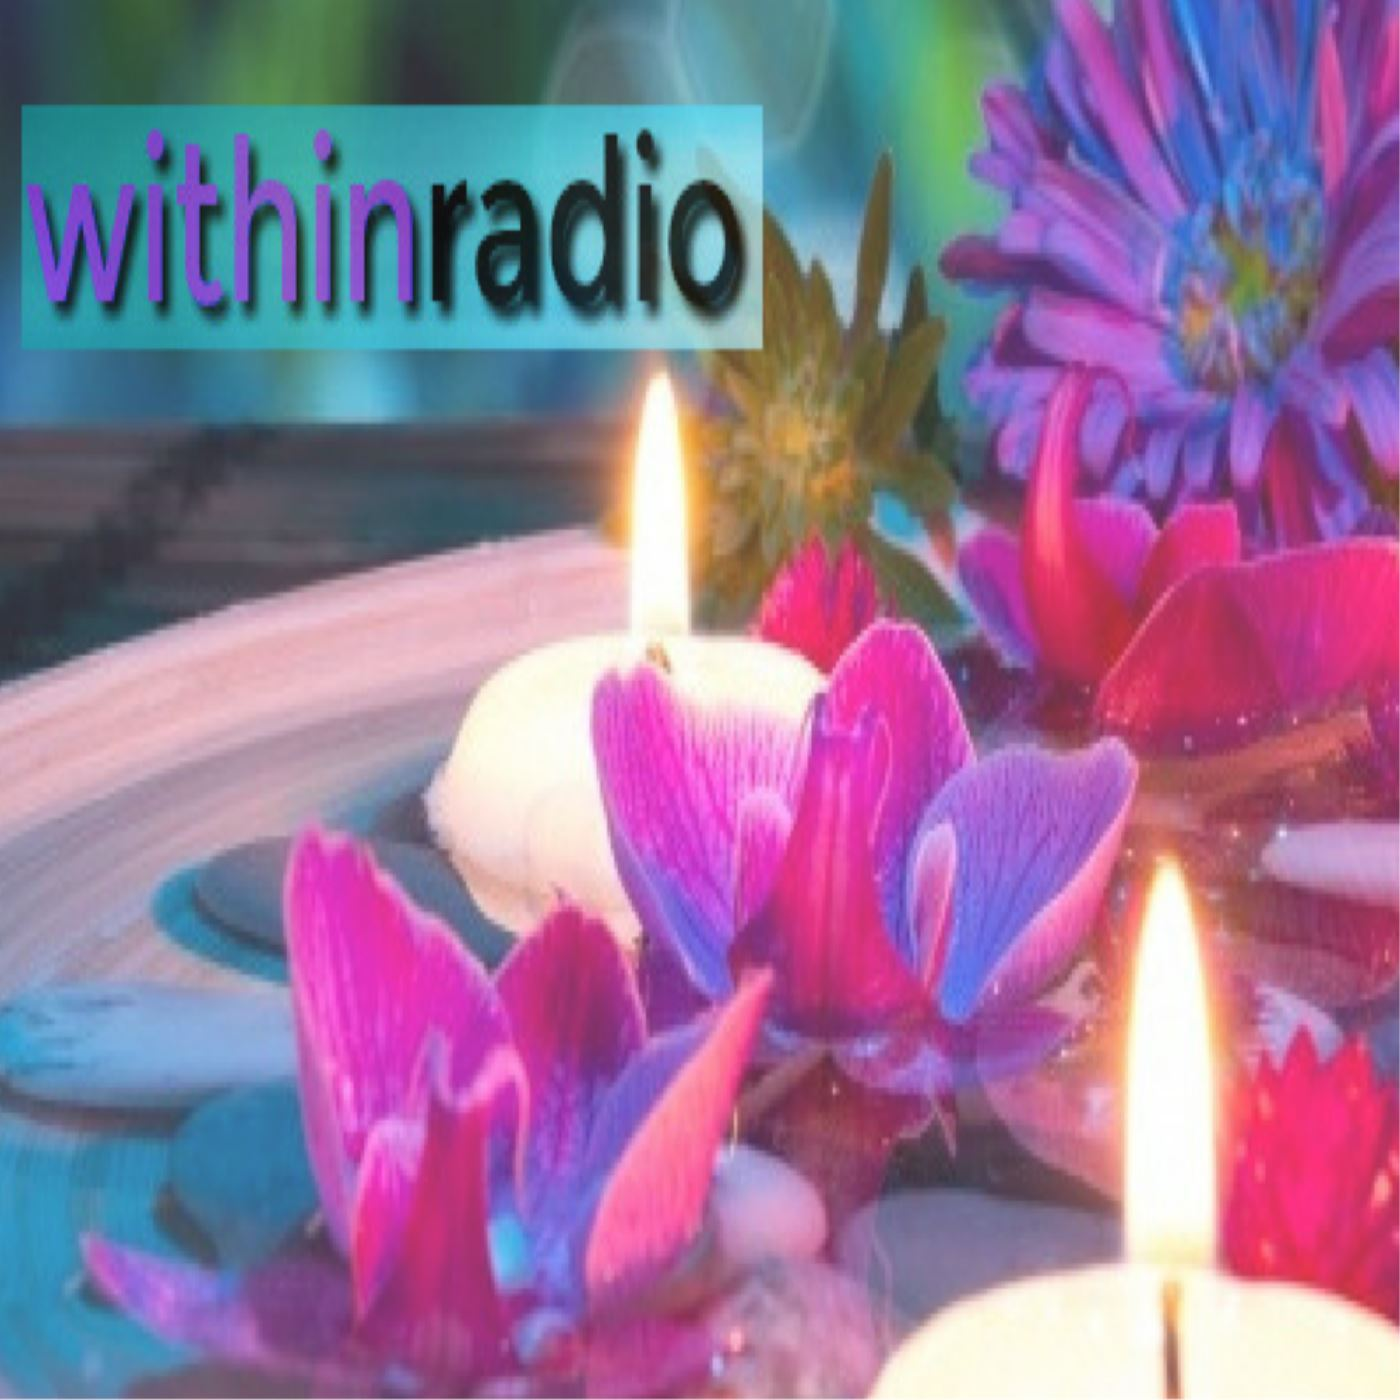 Within Radio